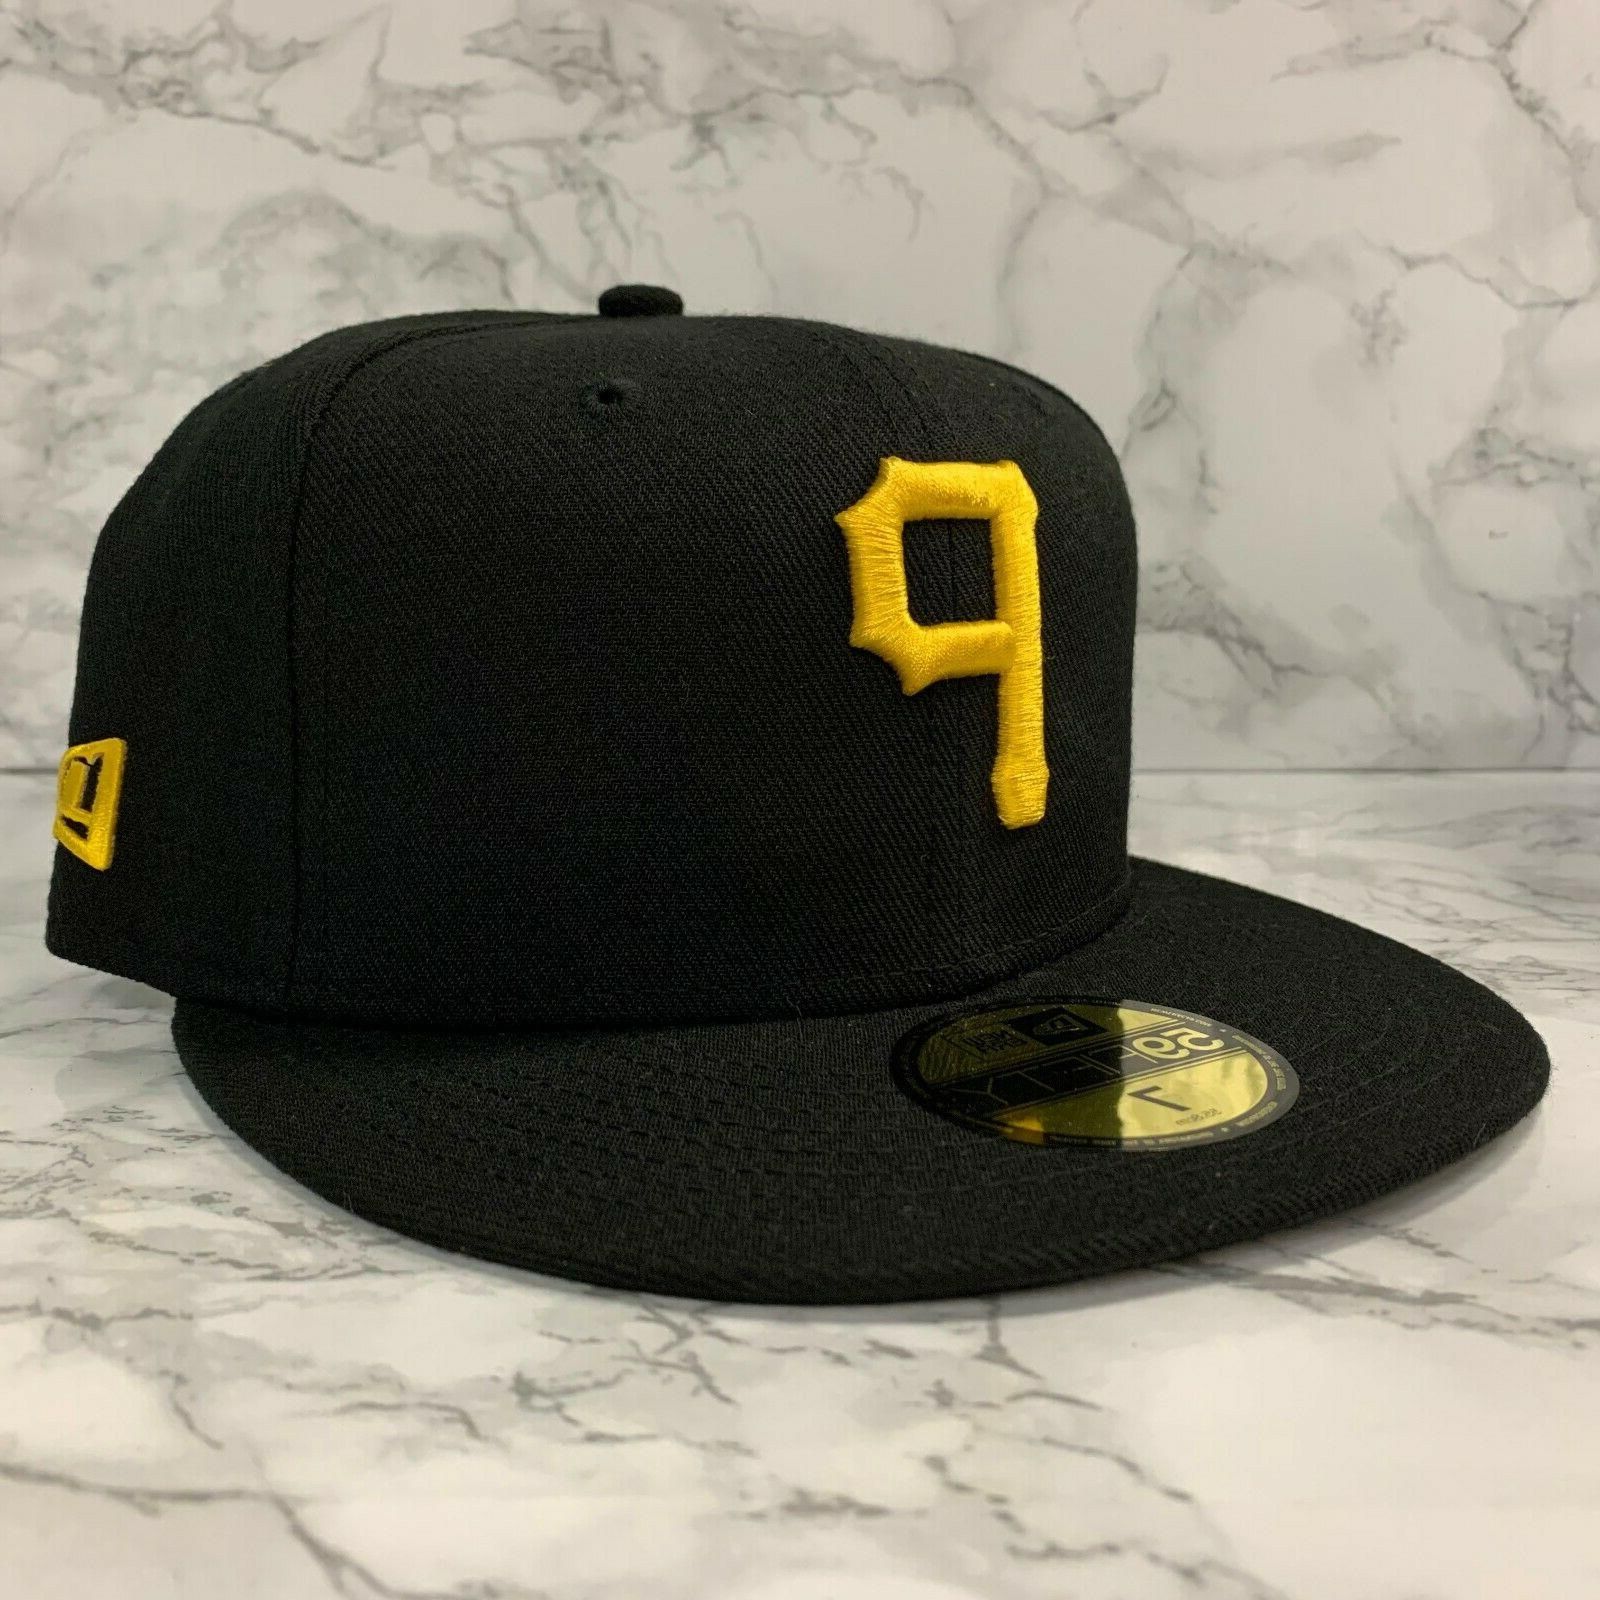 59fifty fitted pittsburgh pirates custom black men